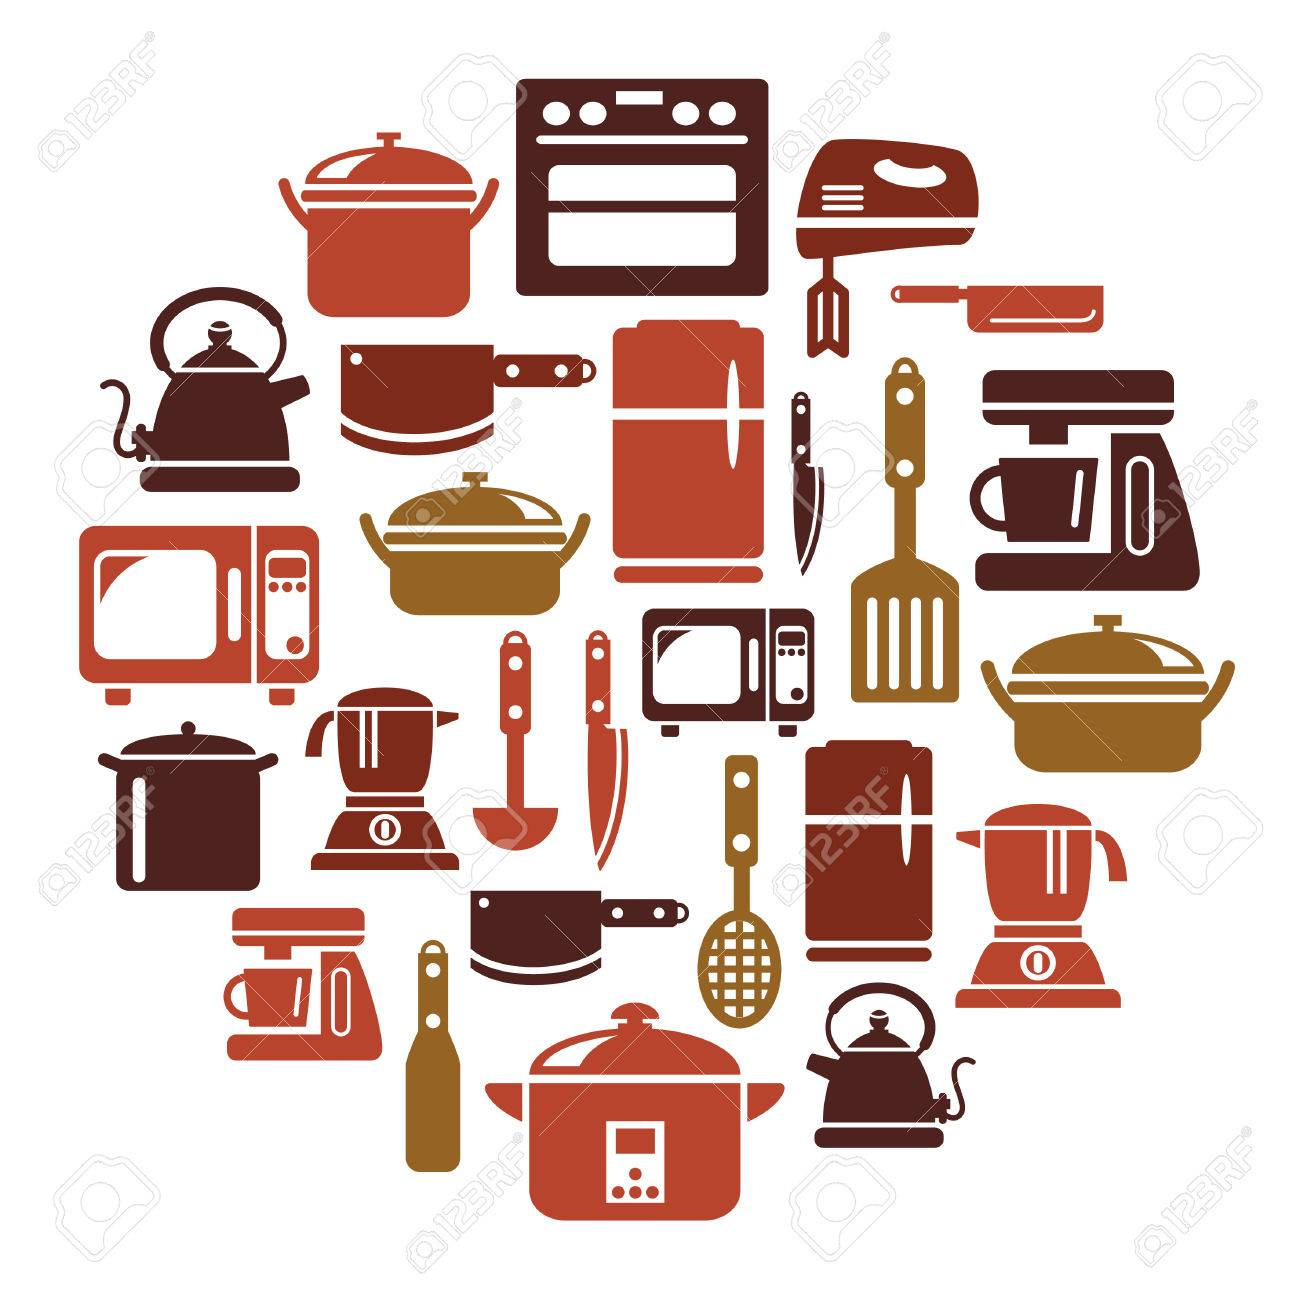 Uncategorized Kitchen Utensils And Appliances kitchen utensils and appliances icons in circle shape royalty free stock vector 30486432